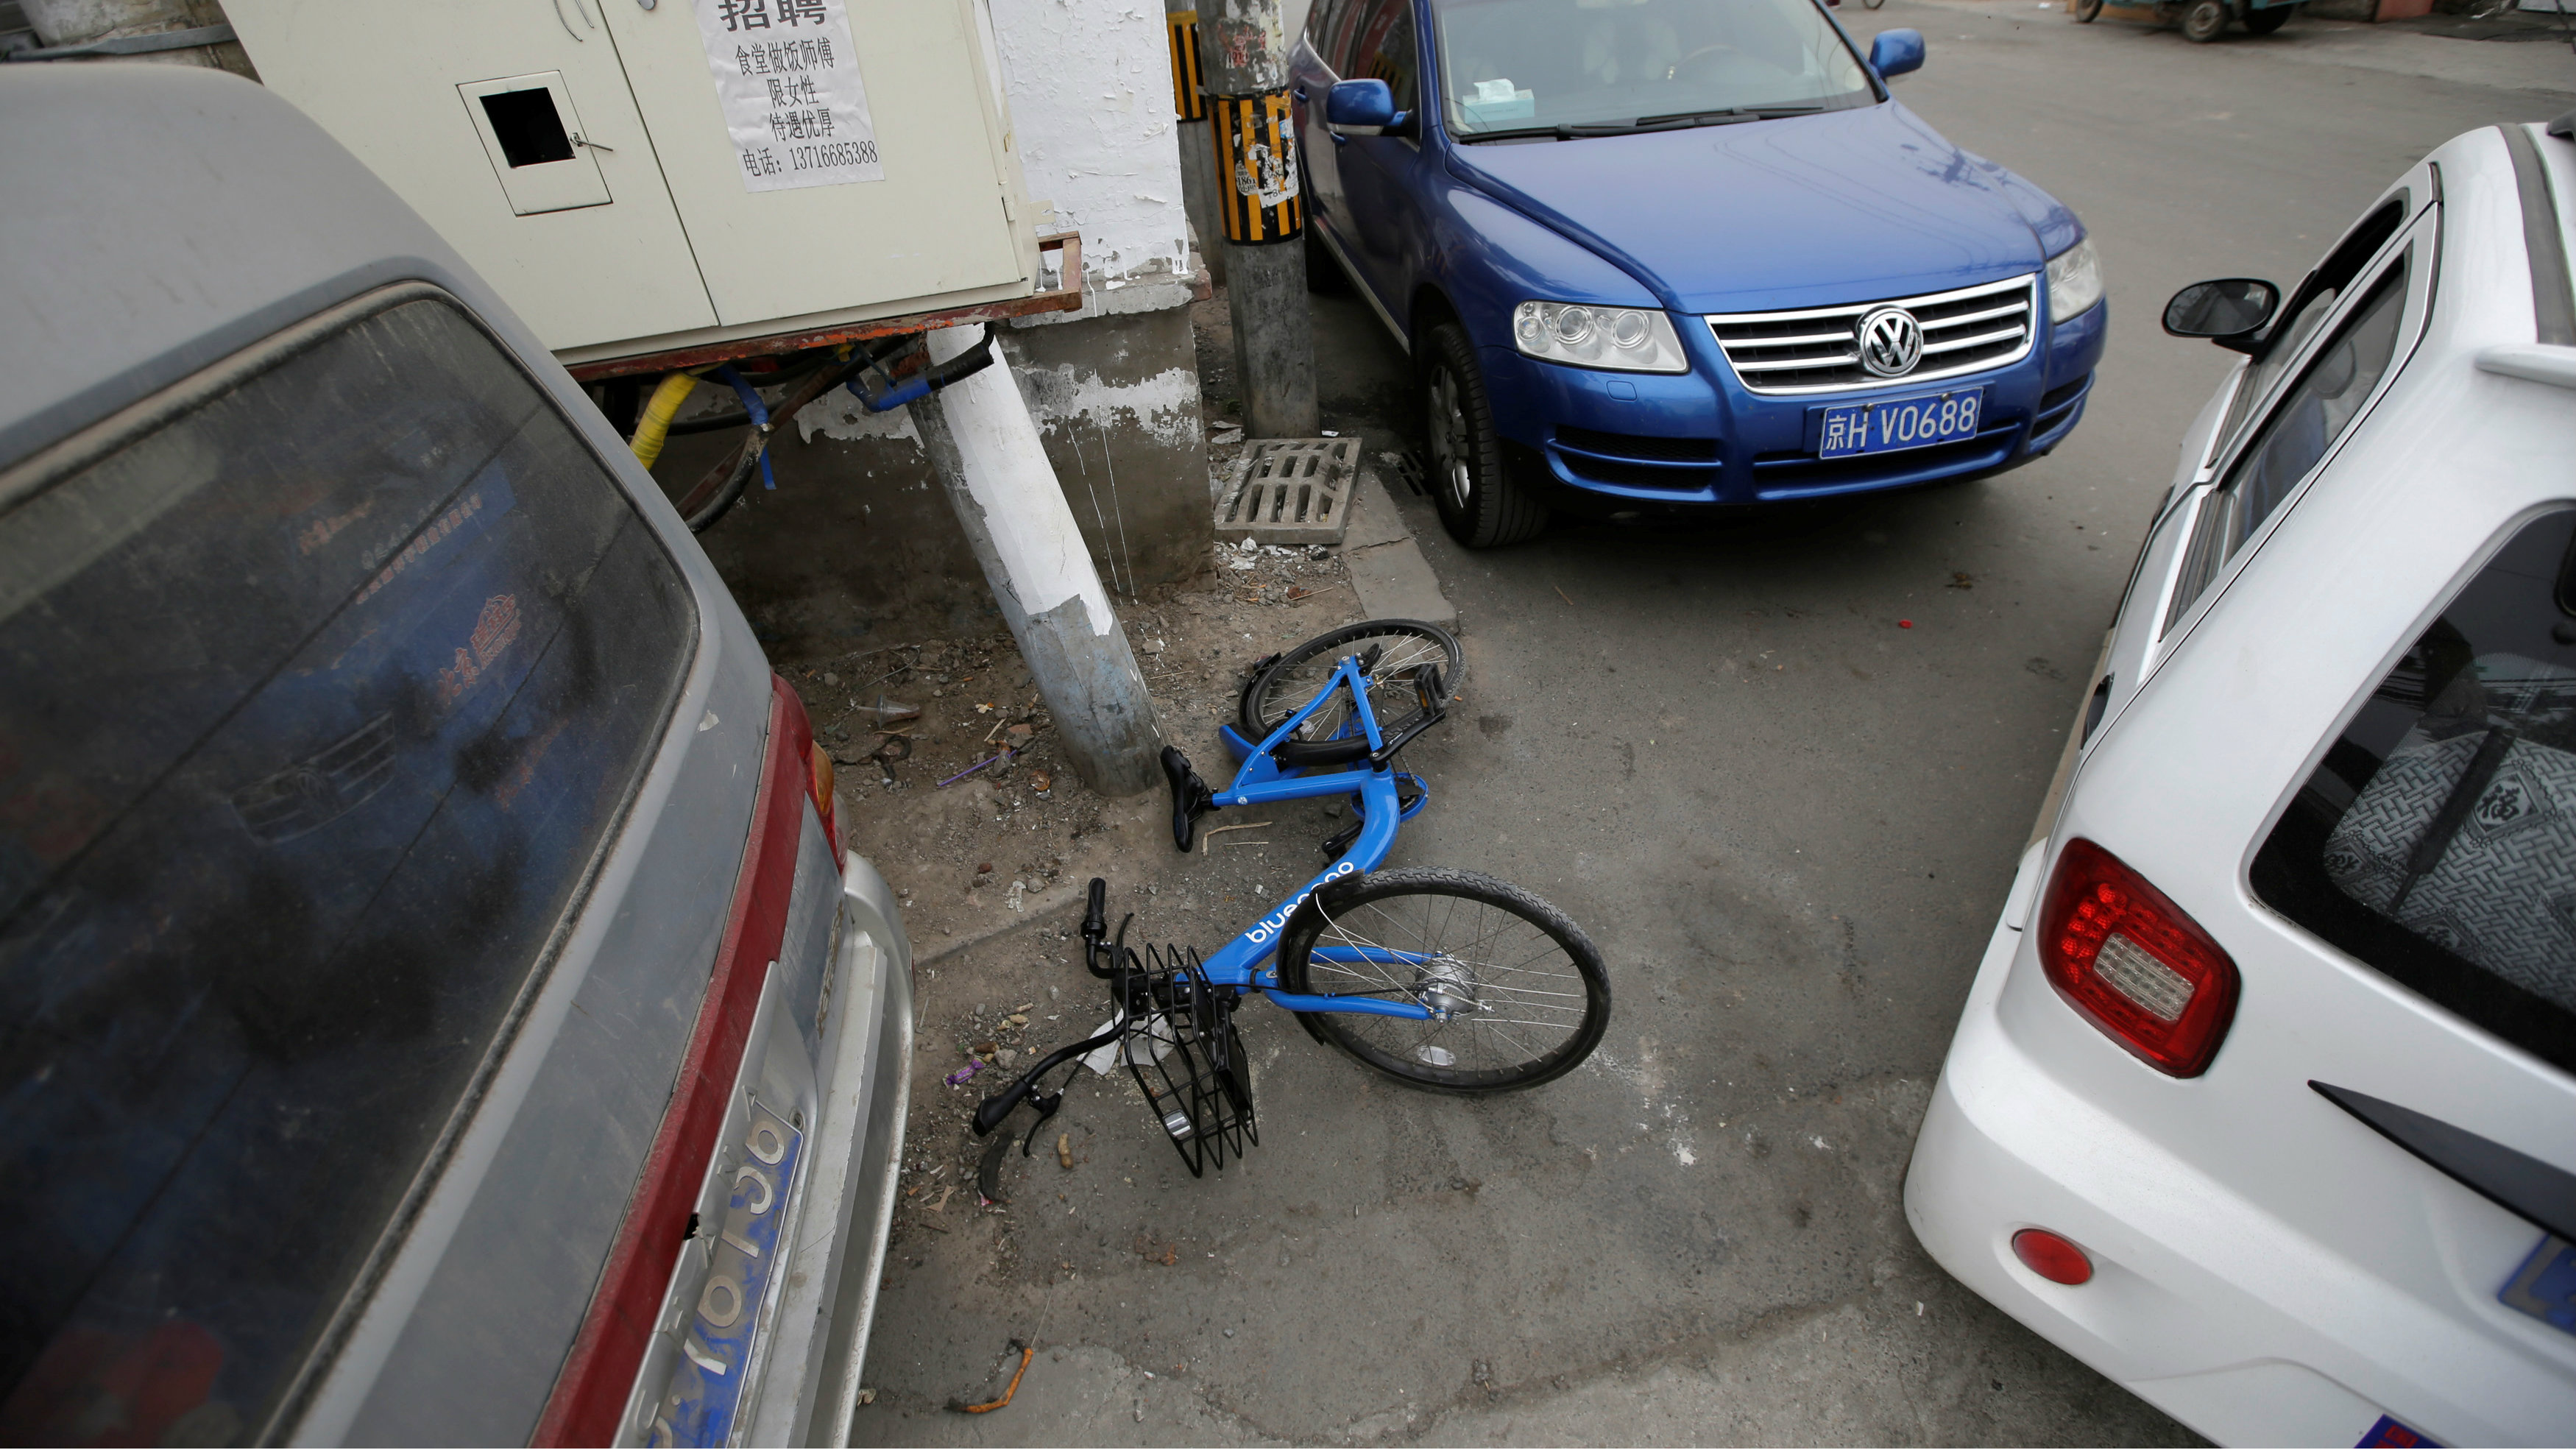 A Bluegogo's shared bike lies among vehicles at a residential area for migrant workers in a village on the outskirts of Beijing, China